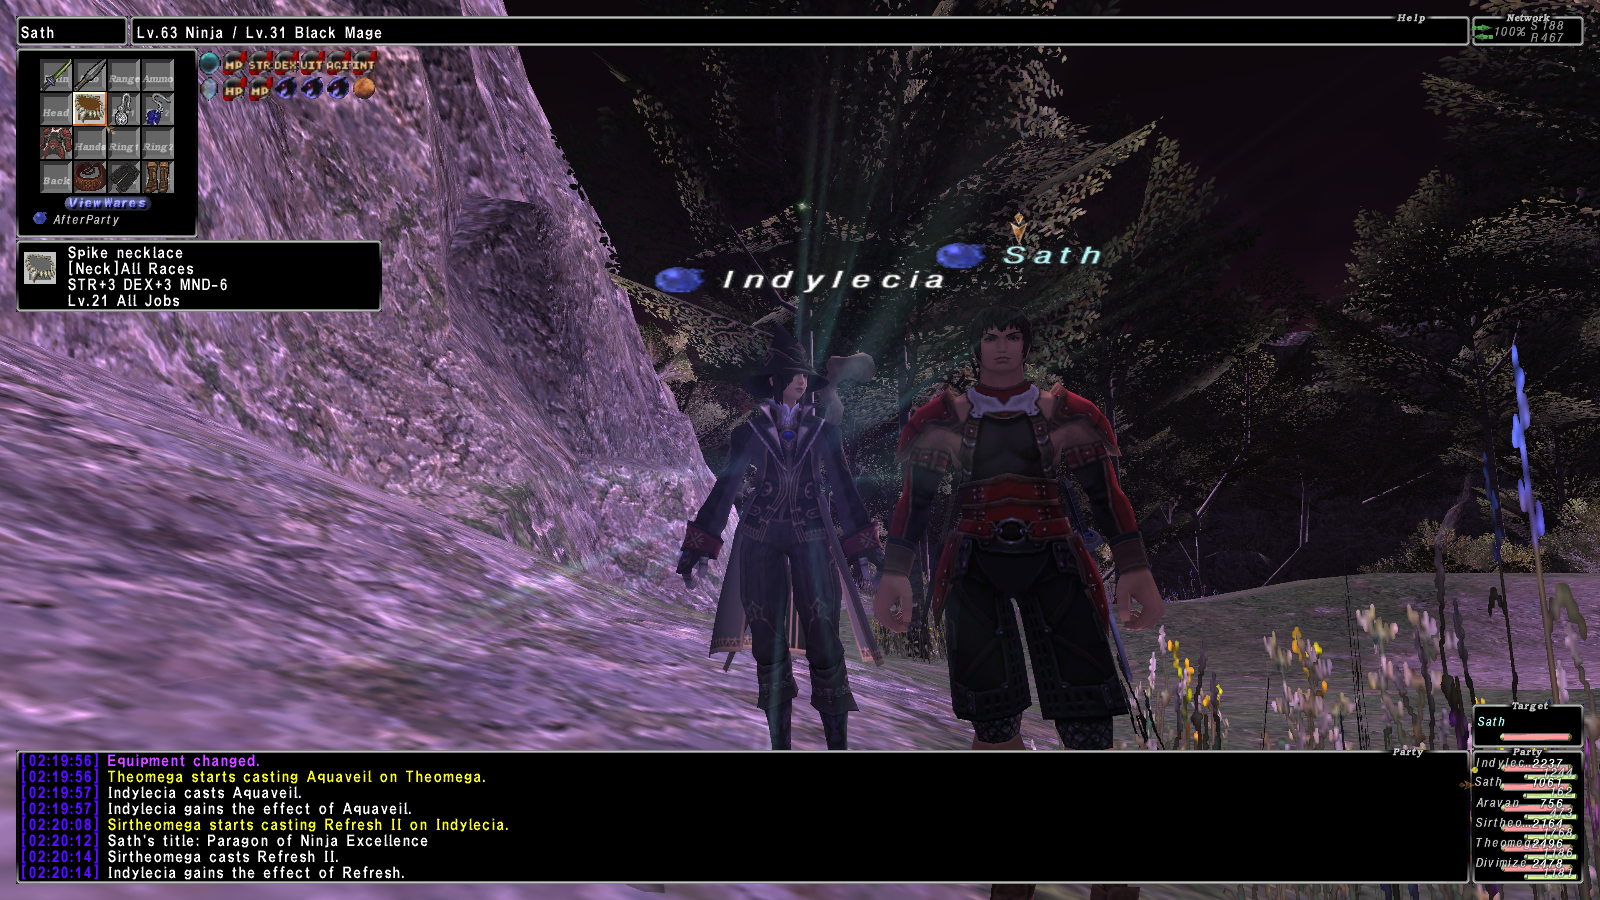 indalecia ffxi gear lv78 wear stand cares leech dolls xxii thread literally player make pics renzys gimpleeches long taking shots screen point fast killing presuming lv90s contribute mobs gonna vtit listed mooch damage contribution tier this play gimpconfusedwtf contributions